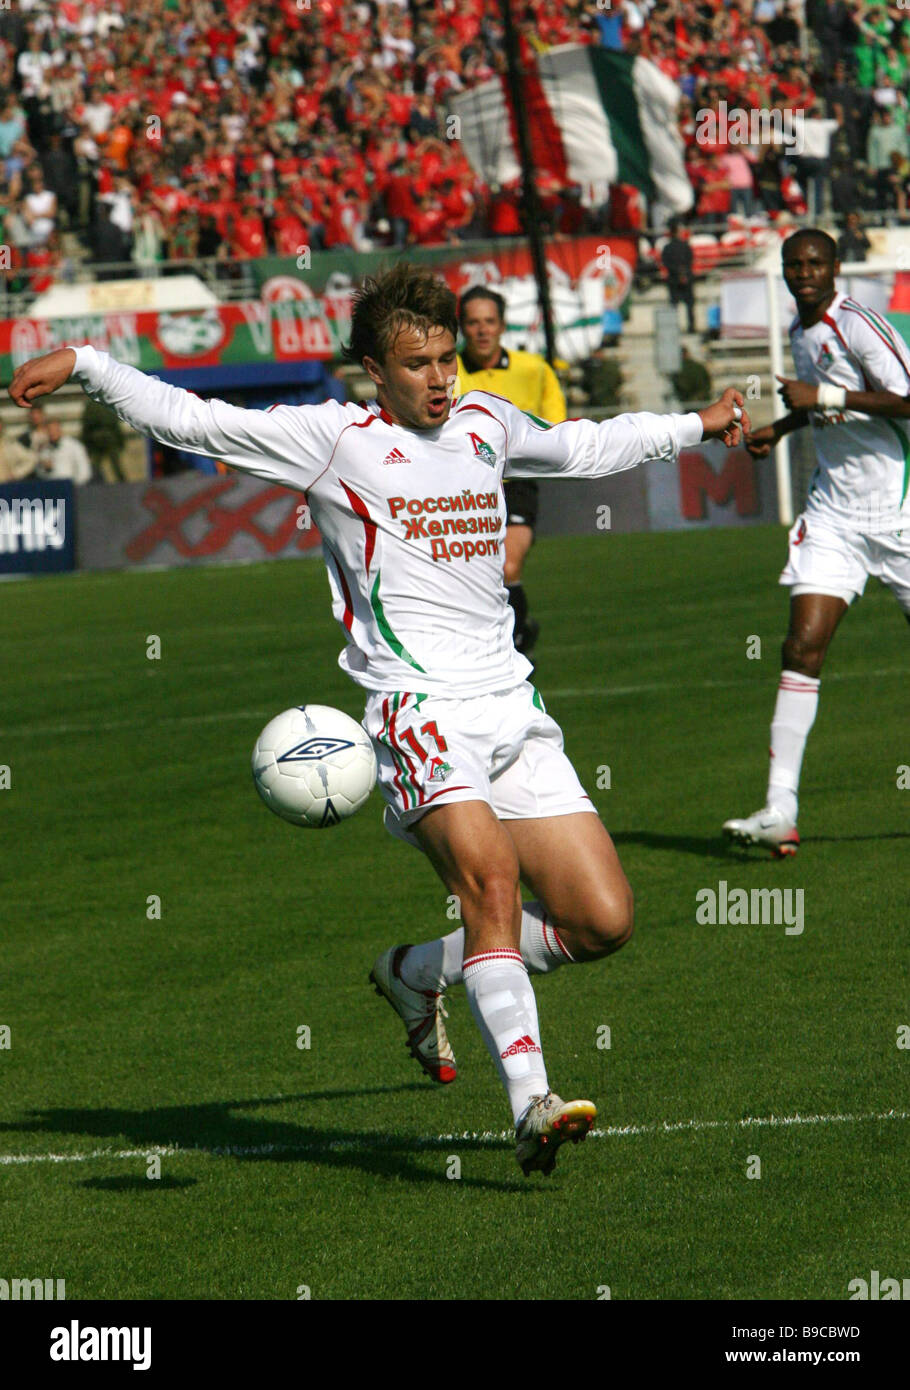 CSKA Moscow football player Dmitry Sychev in a match with the Lokomotiv Moscow football club at Dynamo Stadium in - Stock Image